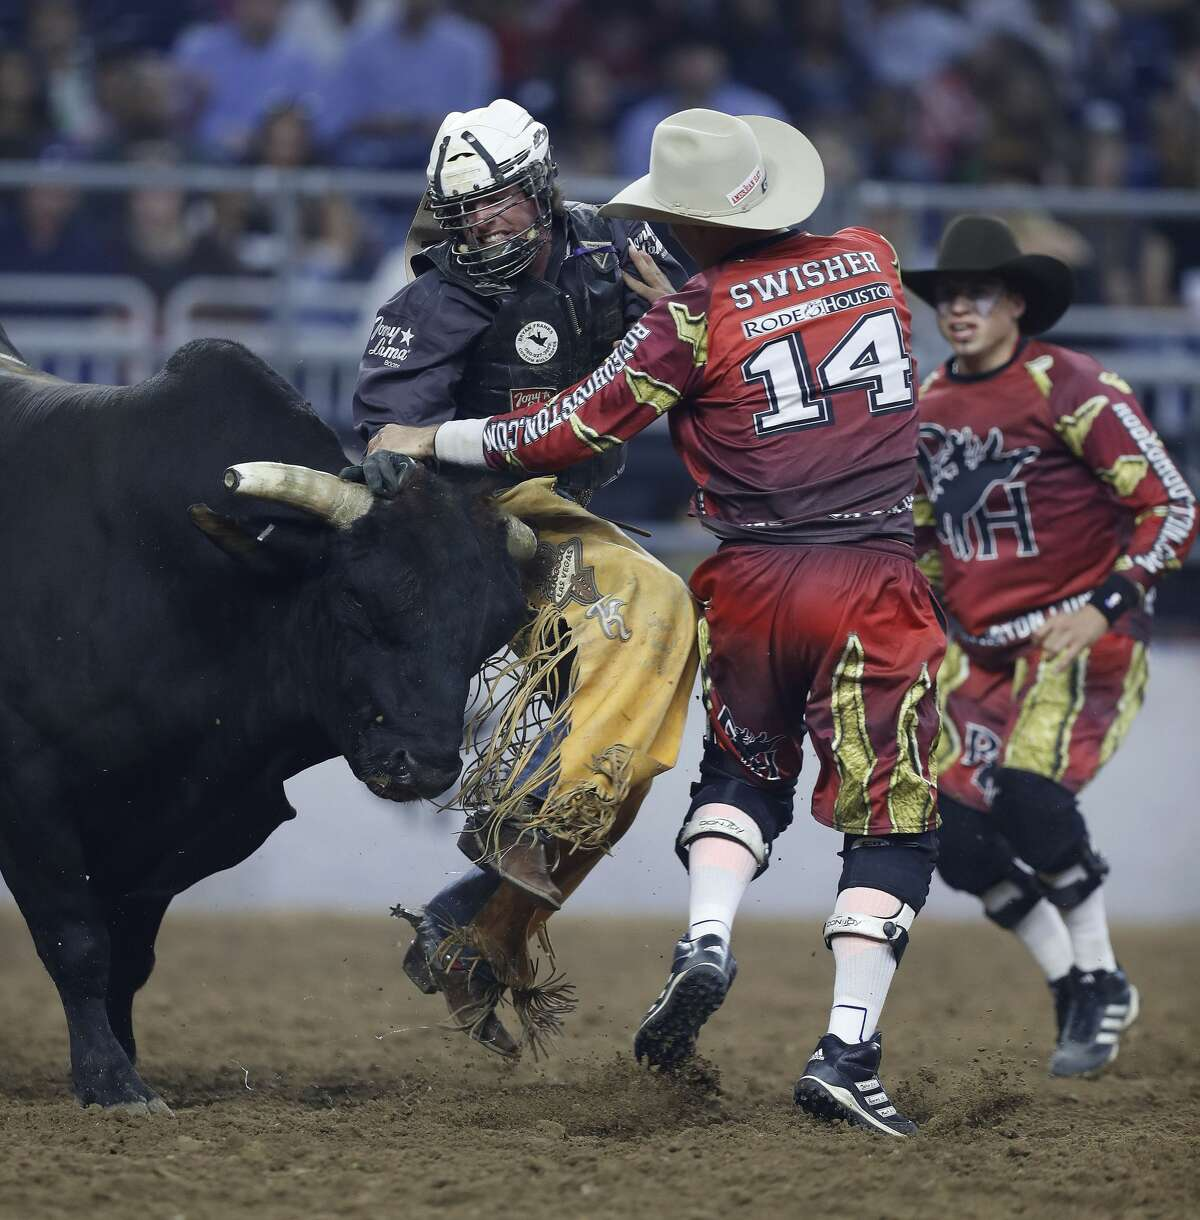 Trevor Kastner gets horned by Bucket Head the bull as bullfighter Chuck Swisher comes in to help him in the bull riding competition during the Super Series IV, round 2, at NRG Stadium, Friday, March 17, 2017, at the Houston Livestock Show and Rodeo, in Houston. ( Karen Warren / Houston Chronicle )